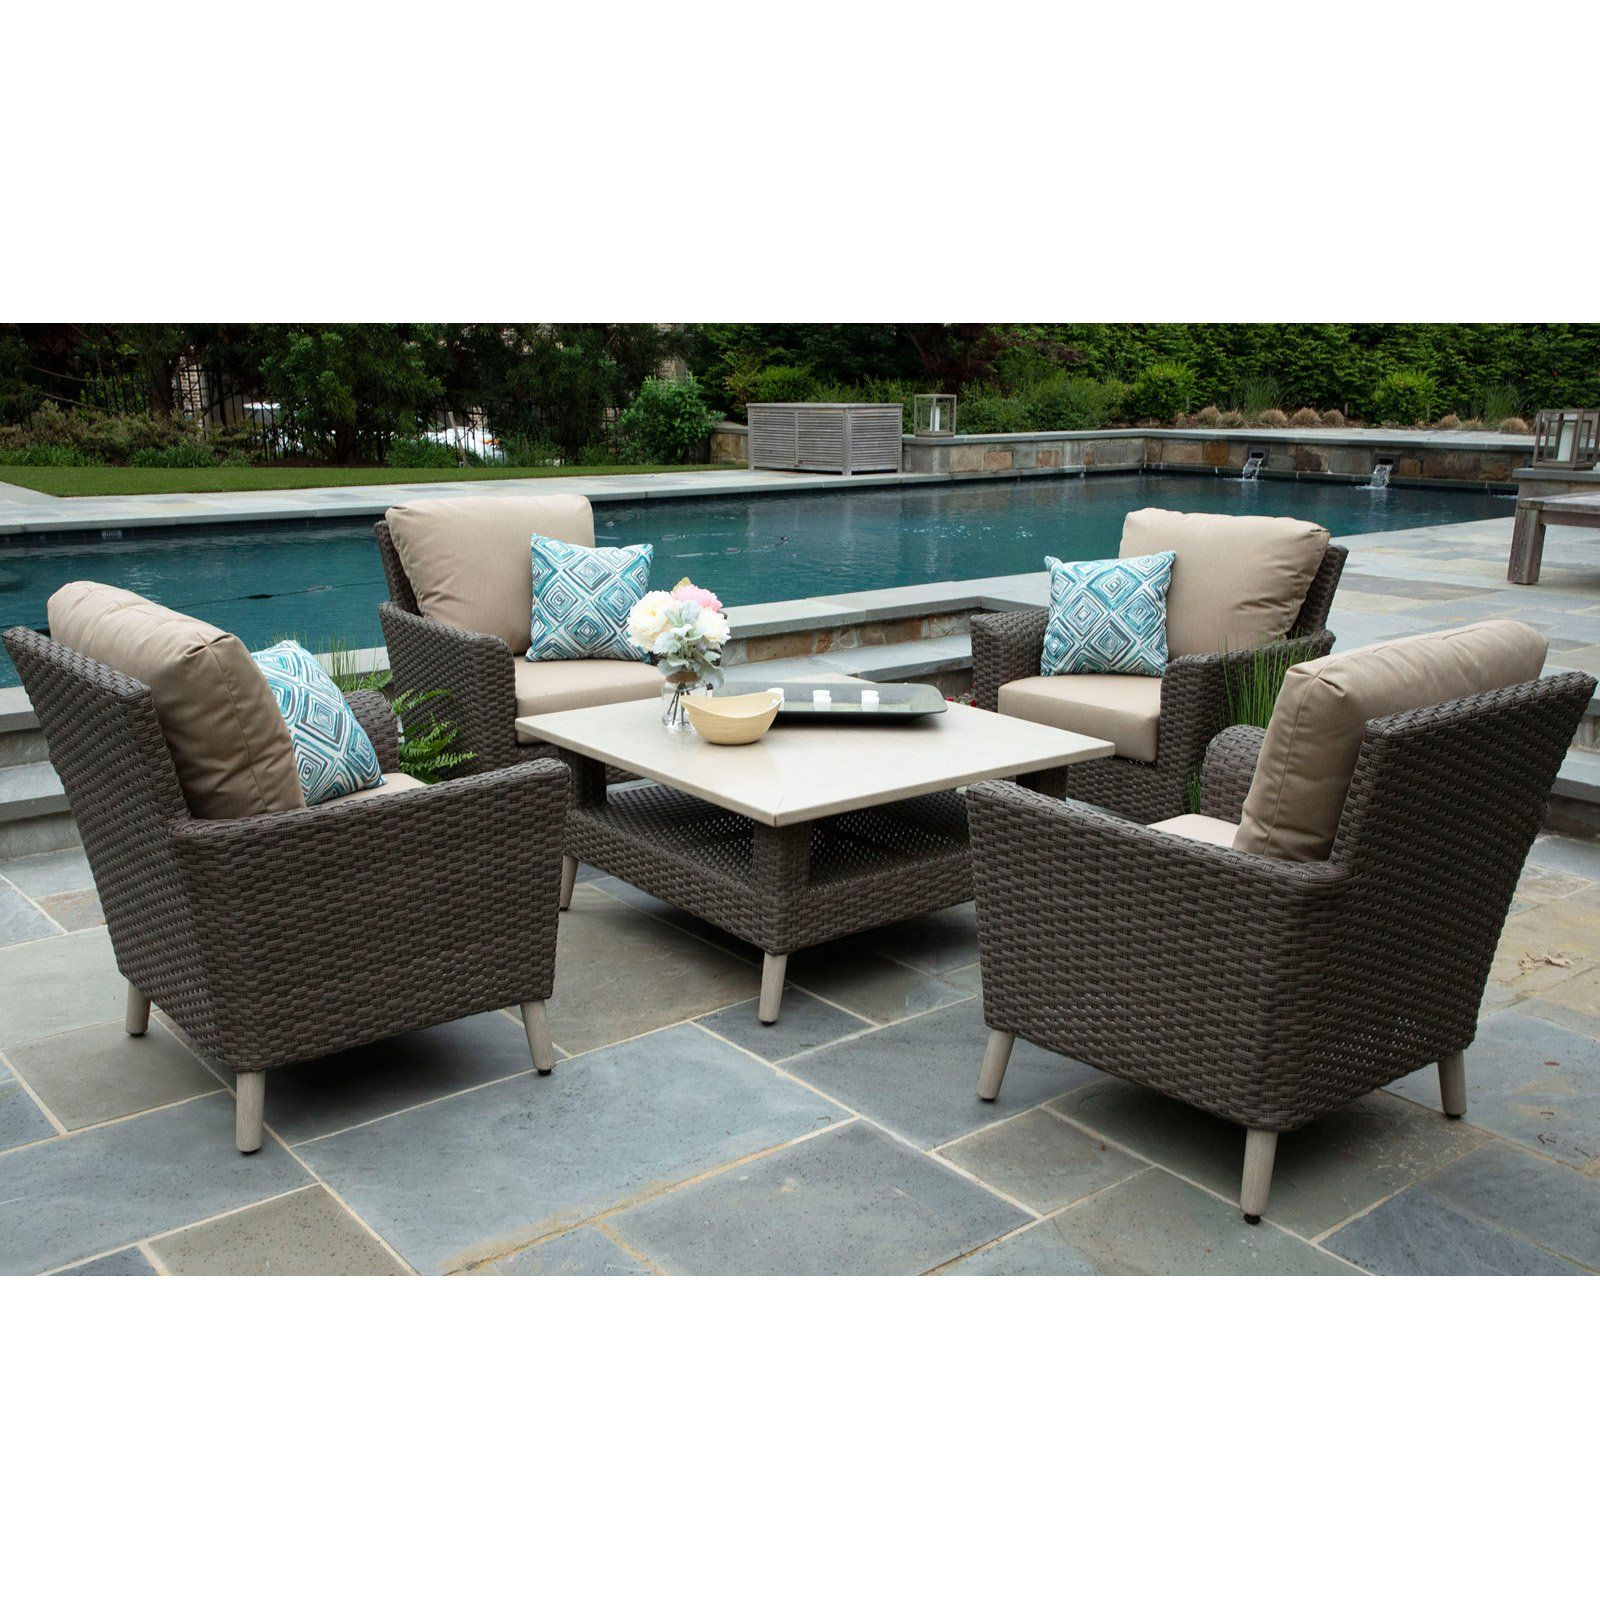 Outdoor Canopy Home and Garden Noble Resin Wicker 5 Piece ...